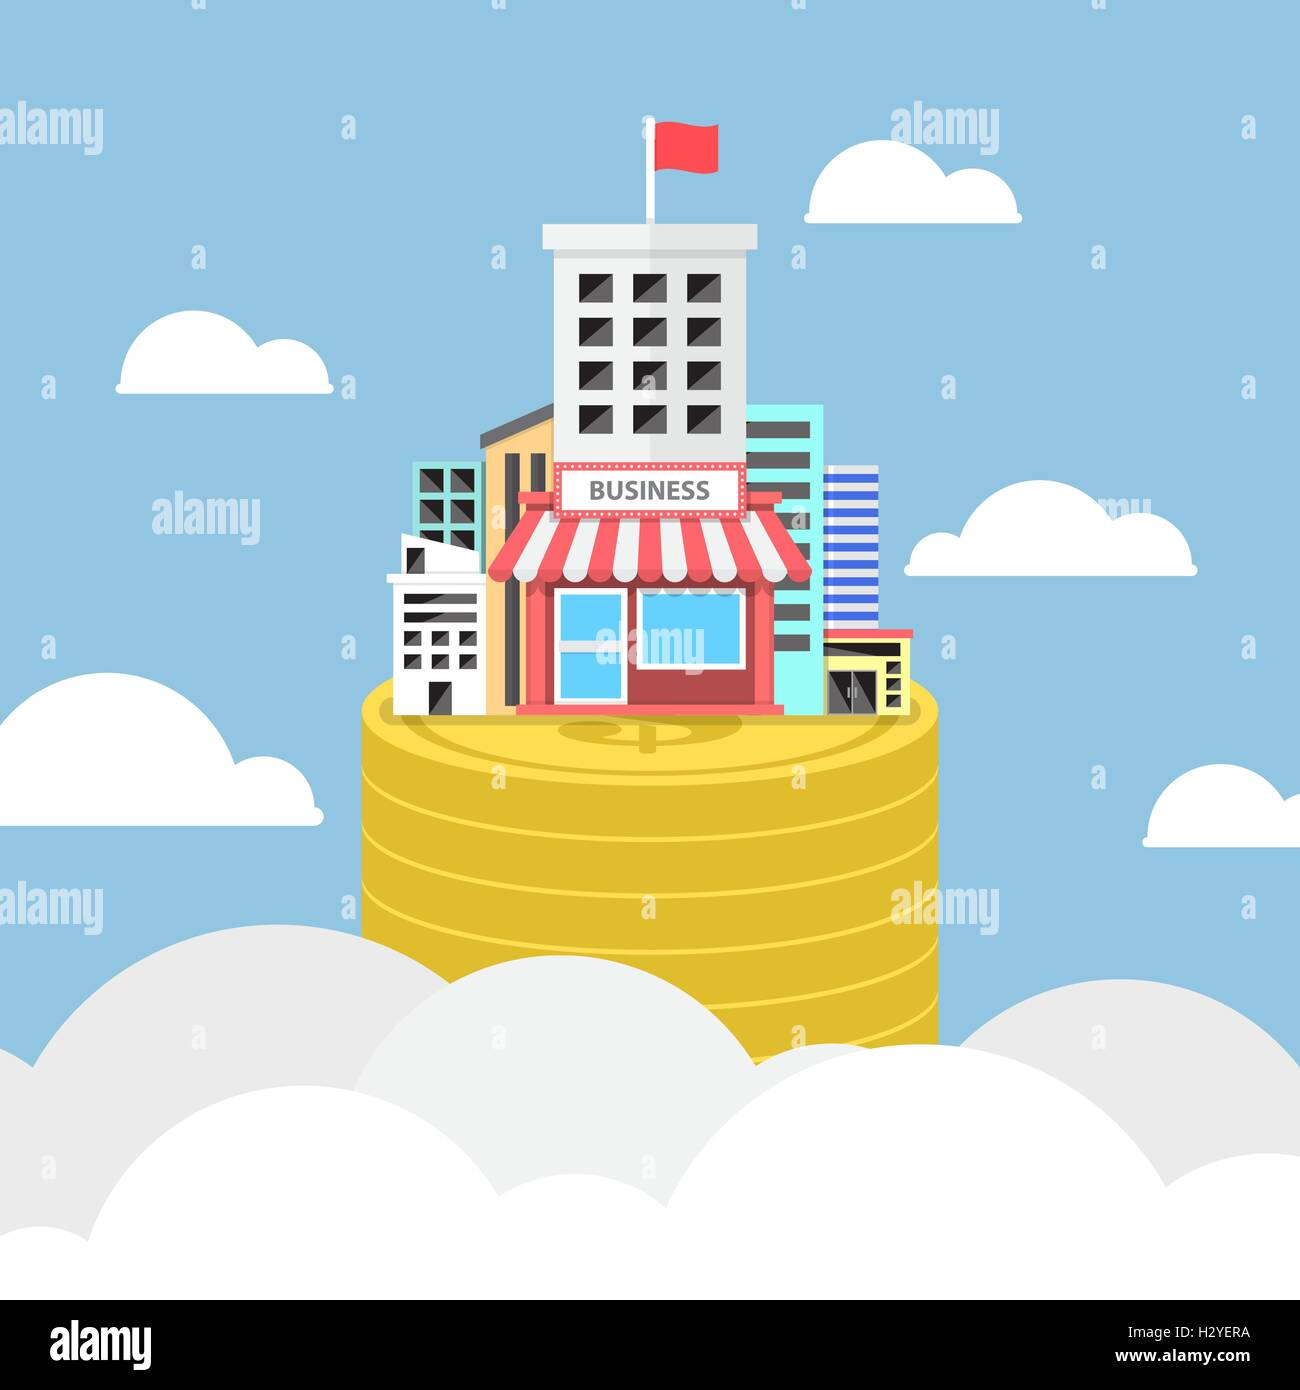 Business building growing on dollar coins, real estate and economic concpet Stock Vector